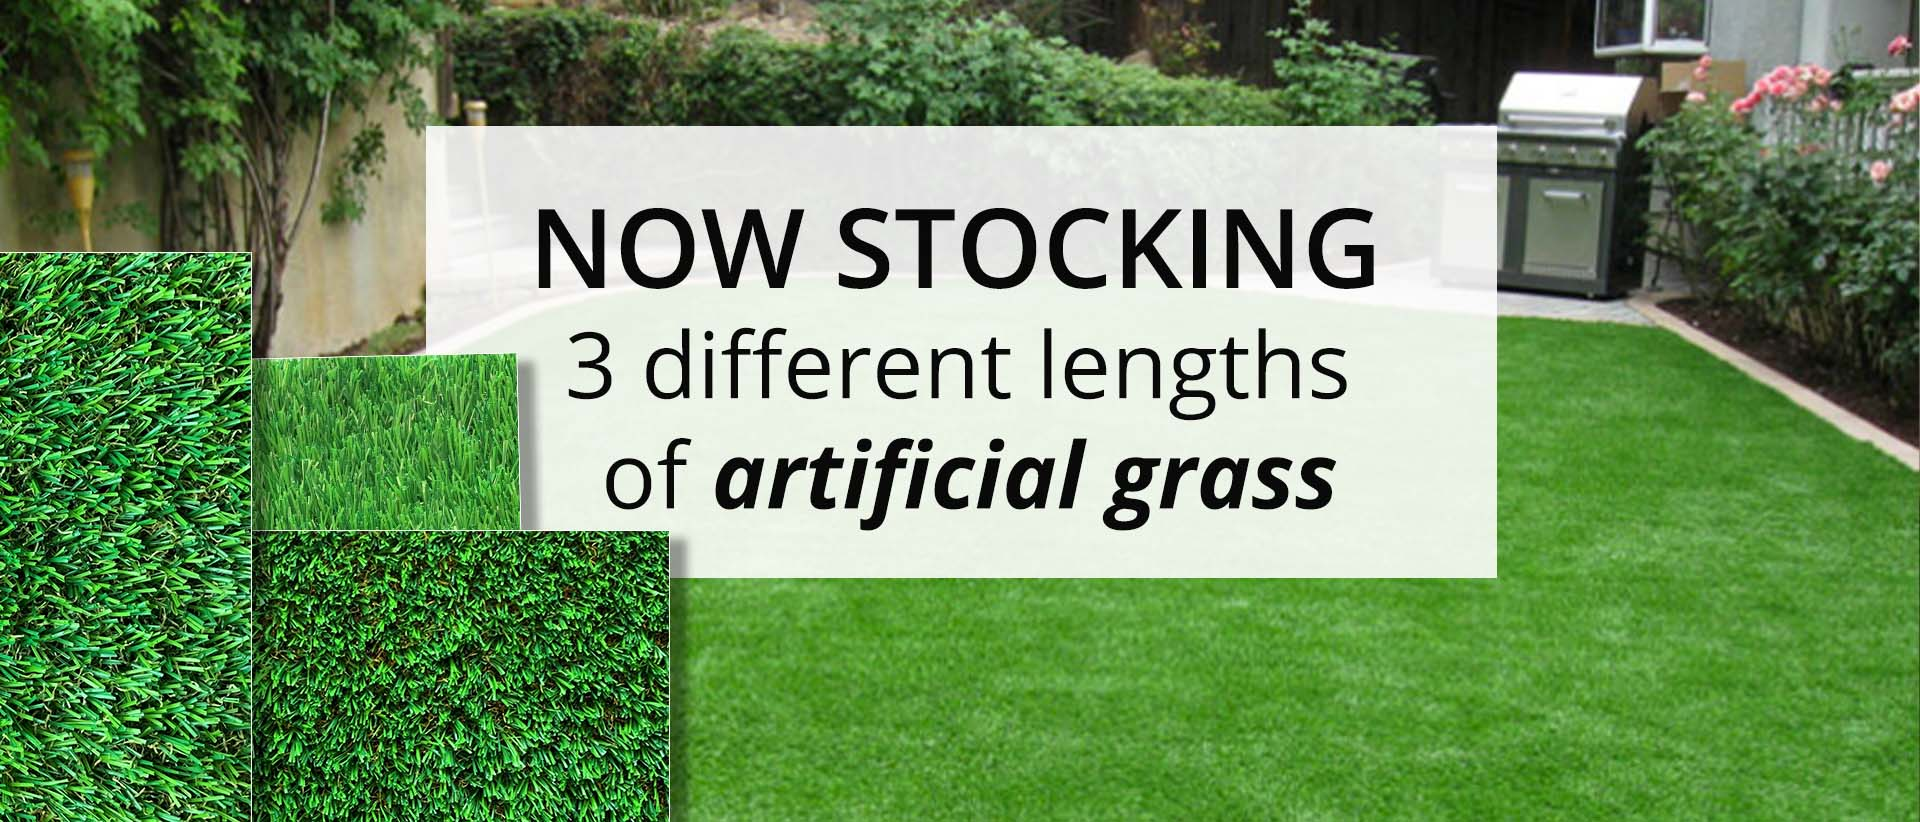 hmpg_artificial_grass